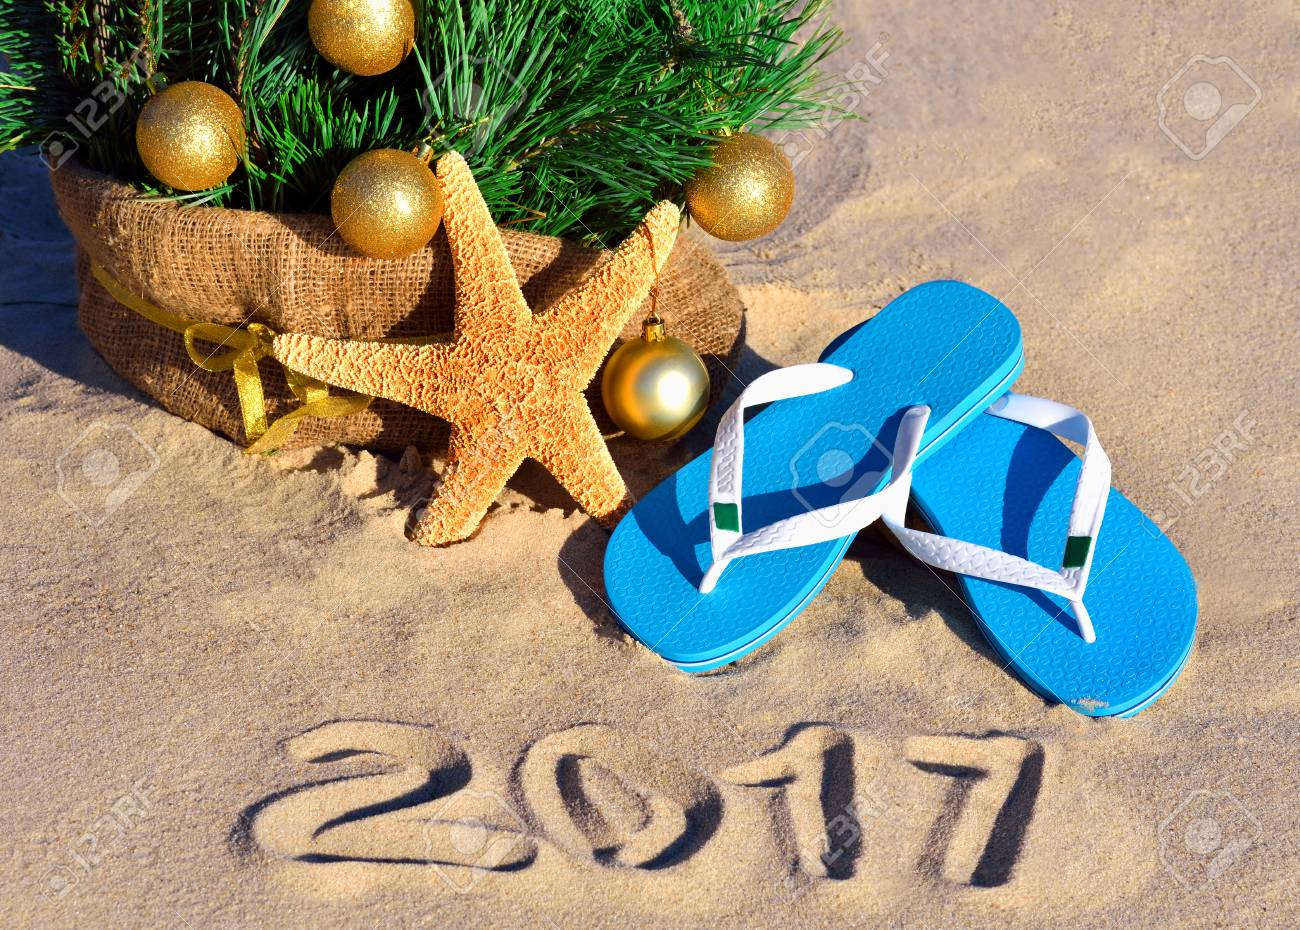 Christmas tree with christmas balls, slippers and starfish on the sand on beach - 67643971